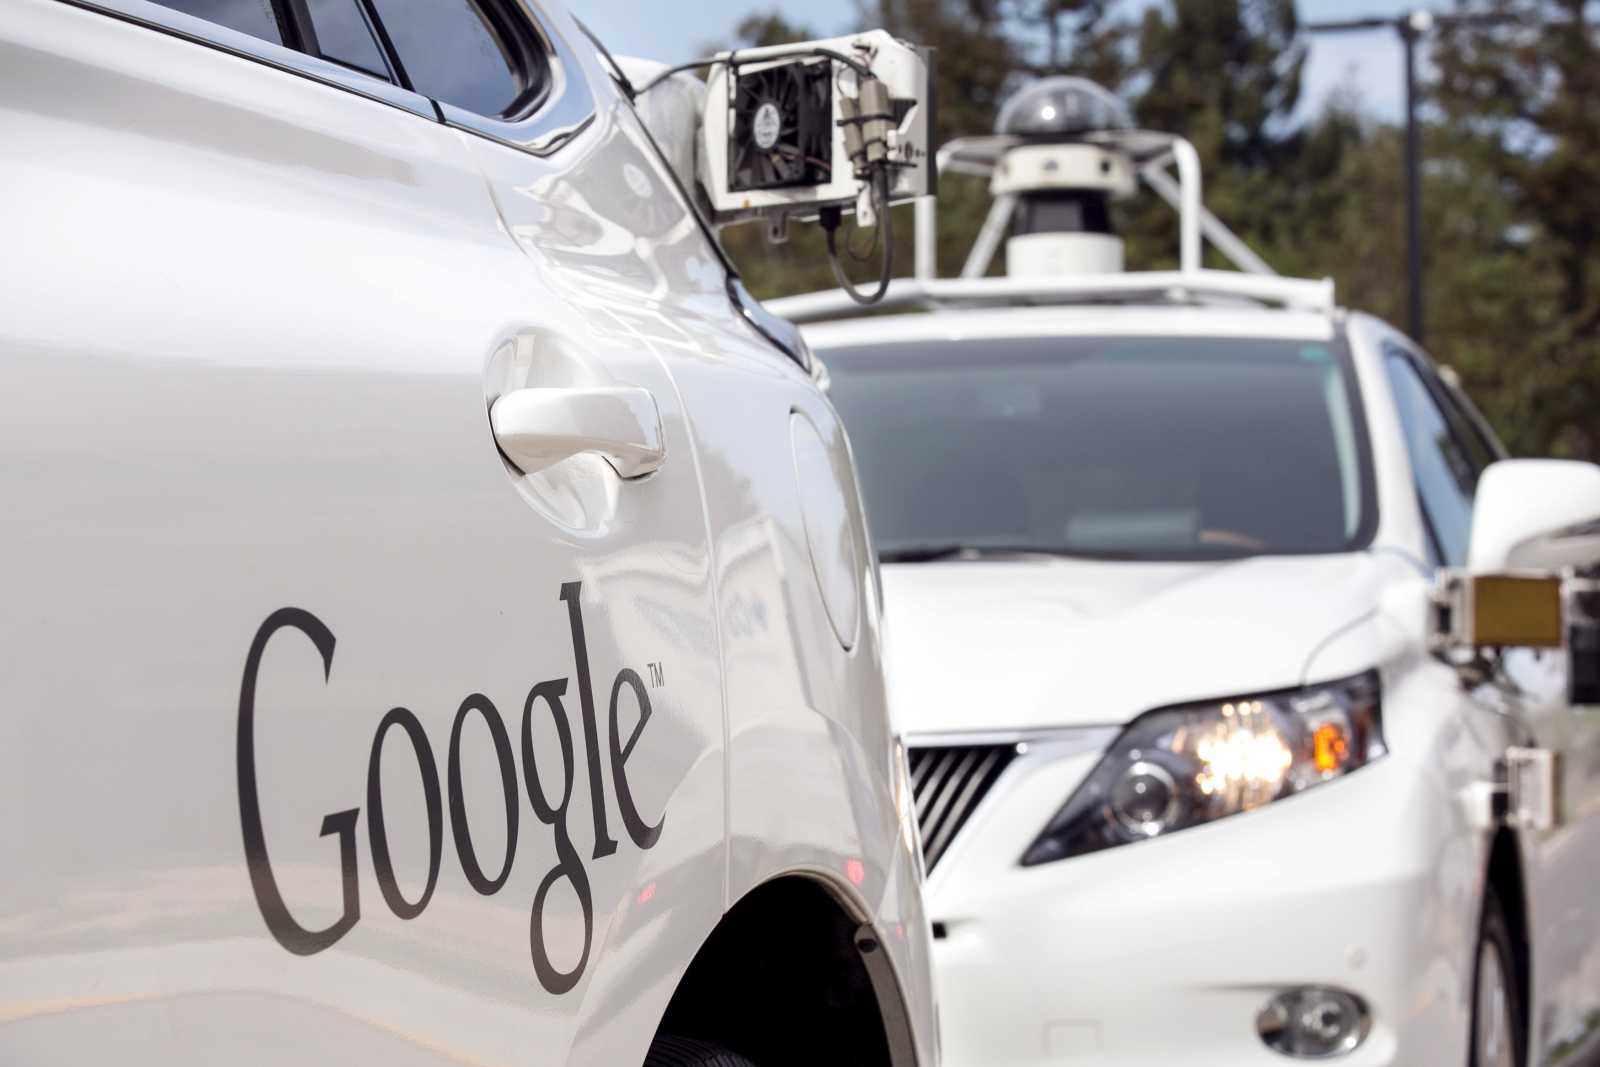 Google self-driving cars to detect police car